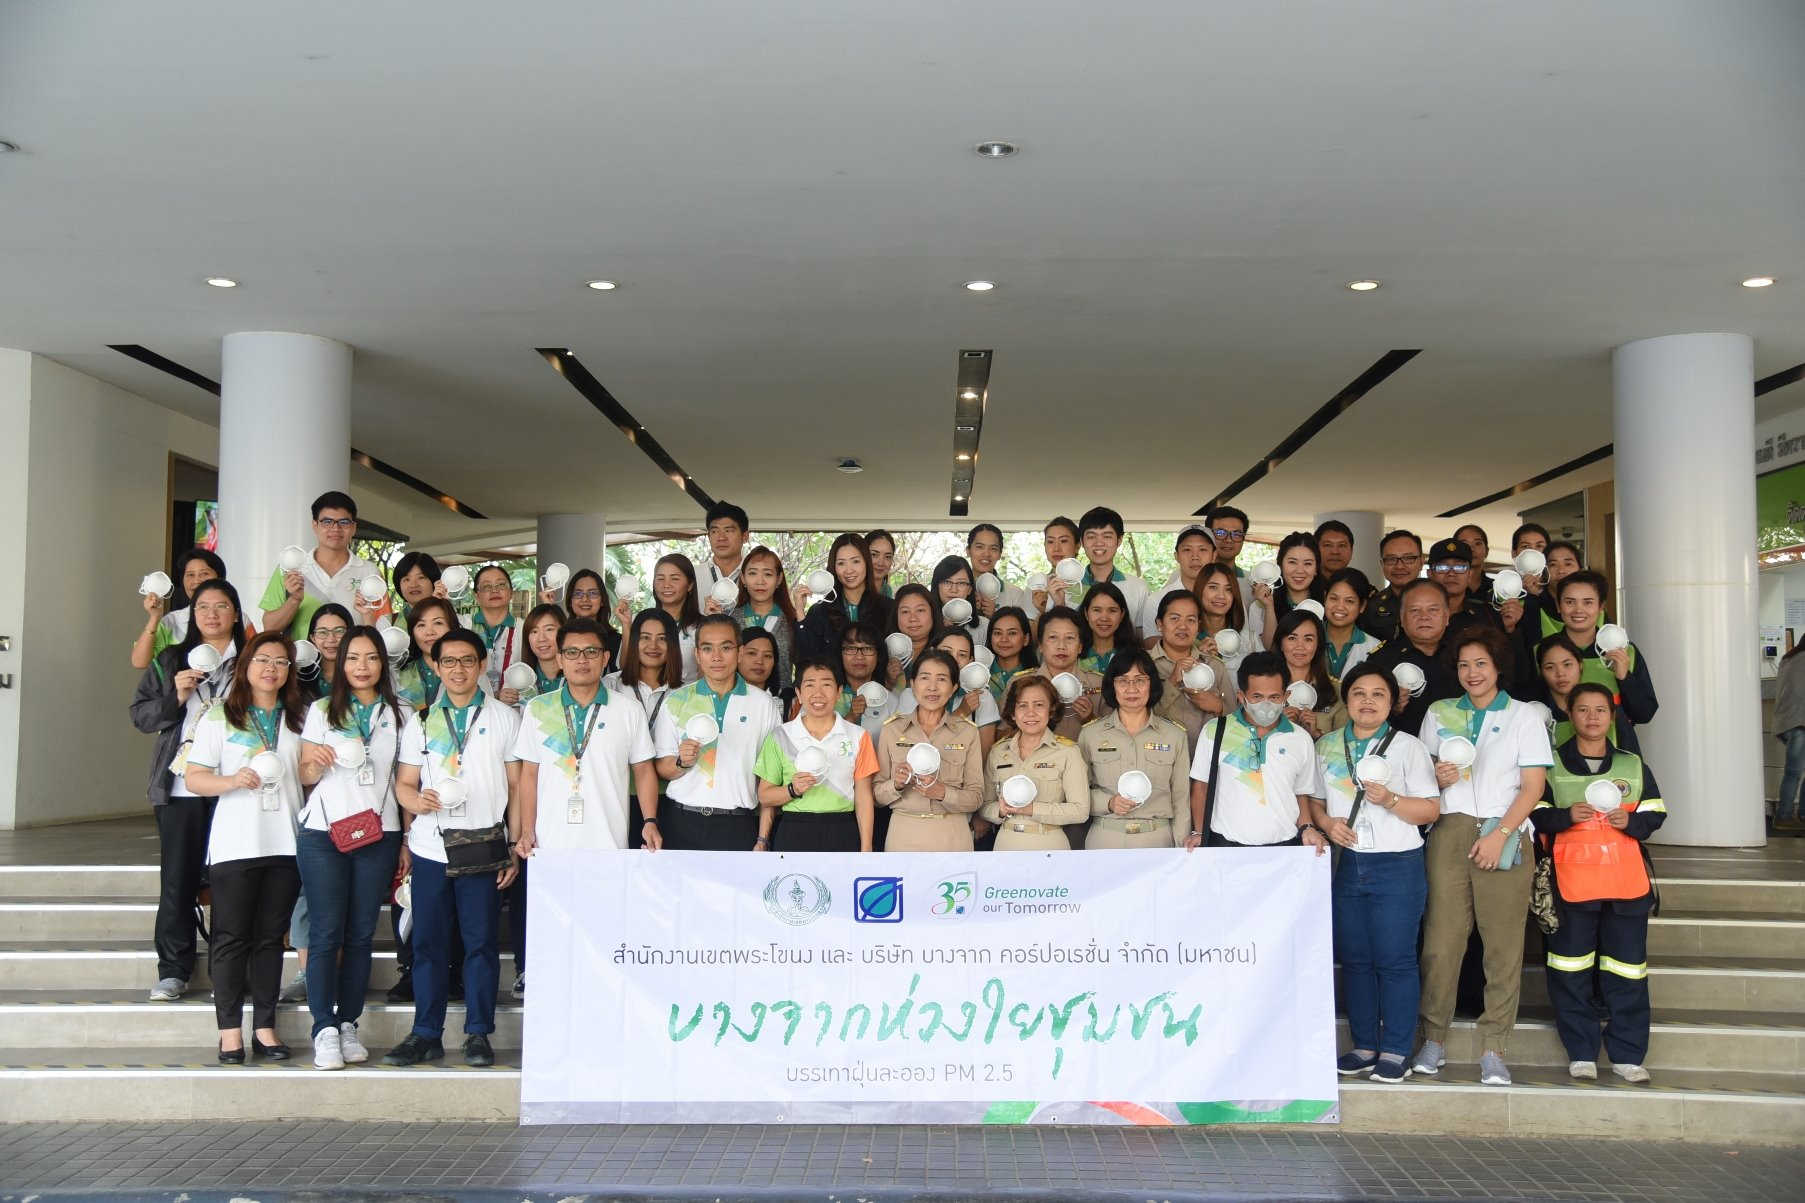 Bangchak, Phra Khanong District Office Caringly Save Communities from Smog